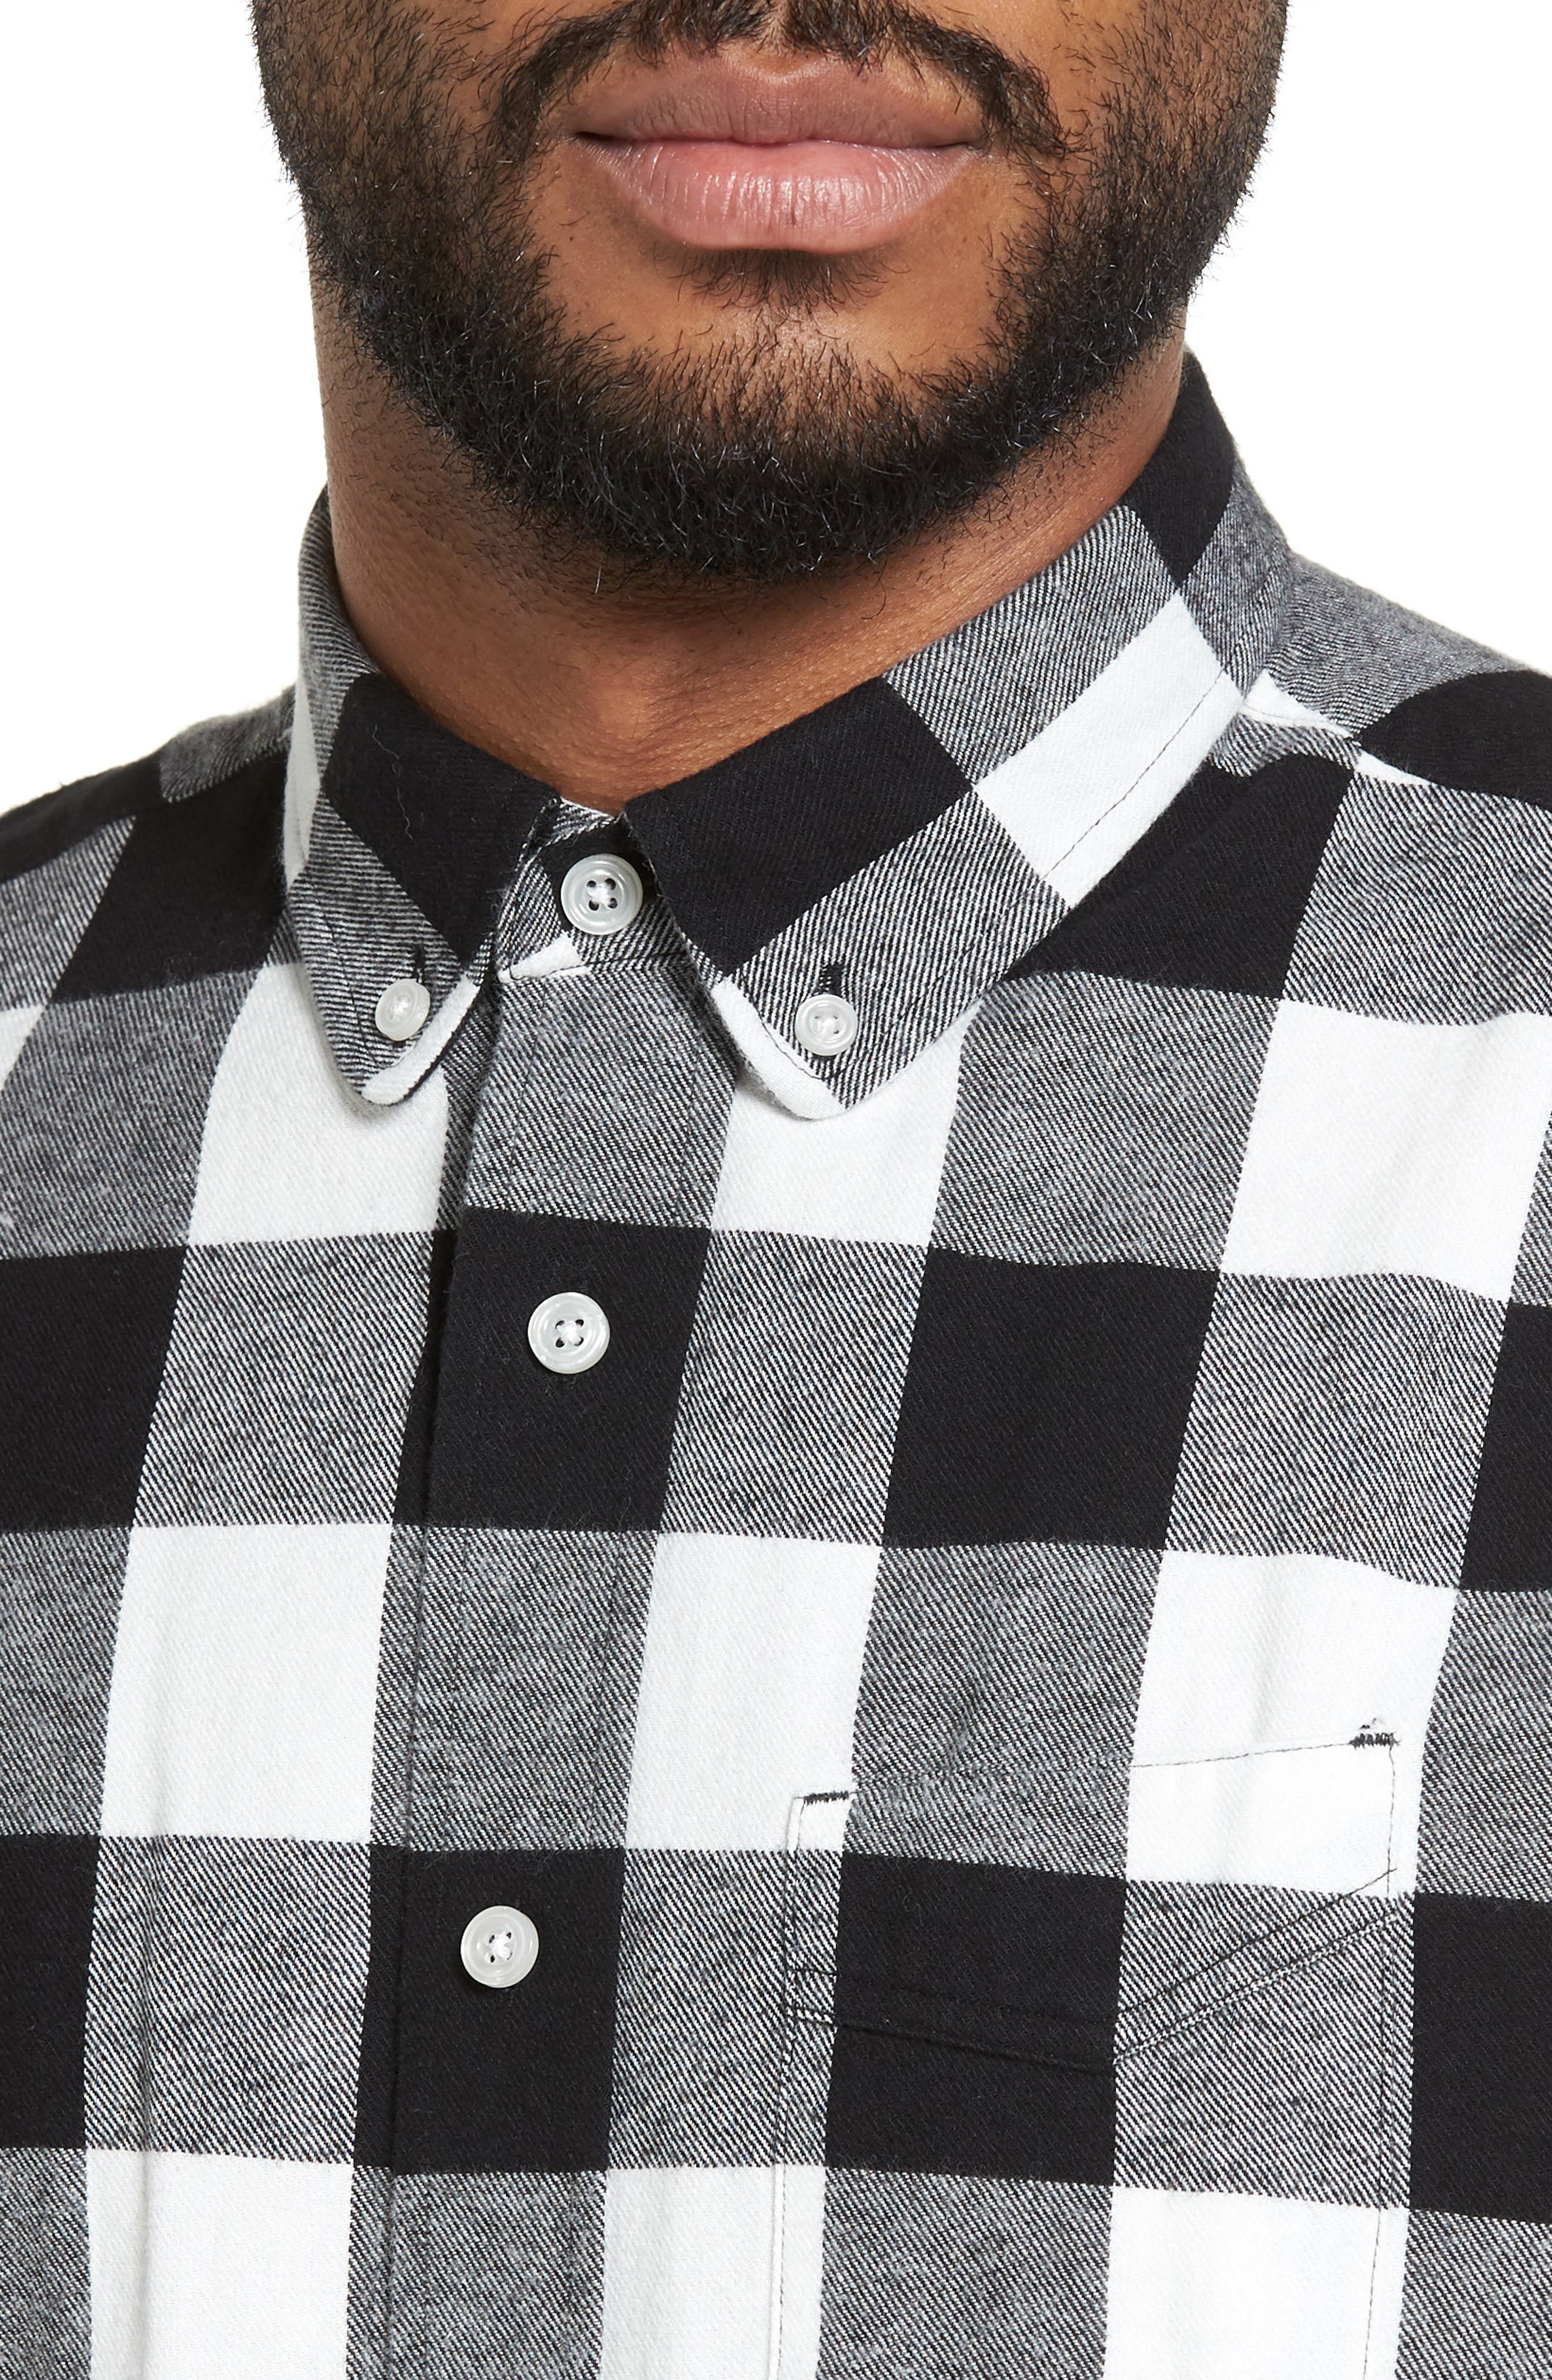 Trim Fit Buffalo Plaid Flannel Sport Shirt,                             Alternate thumbnail 4, color,                             Black/ White Buffalo Plaid